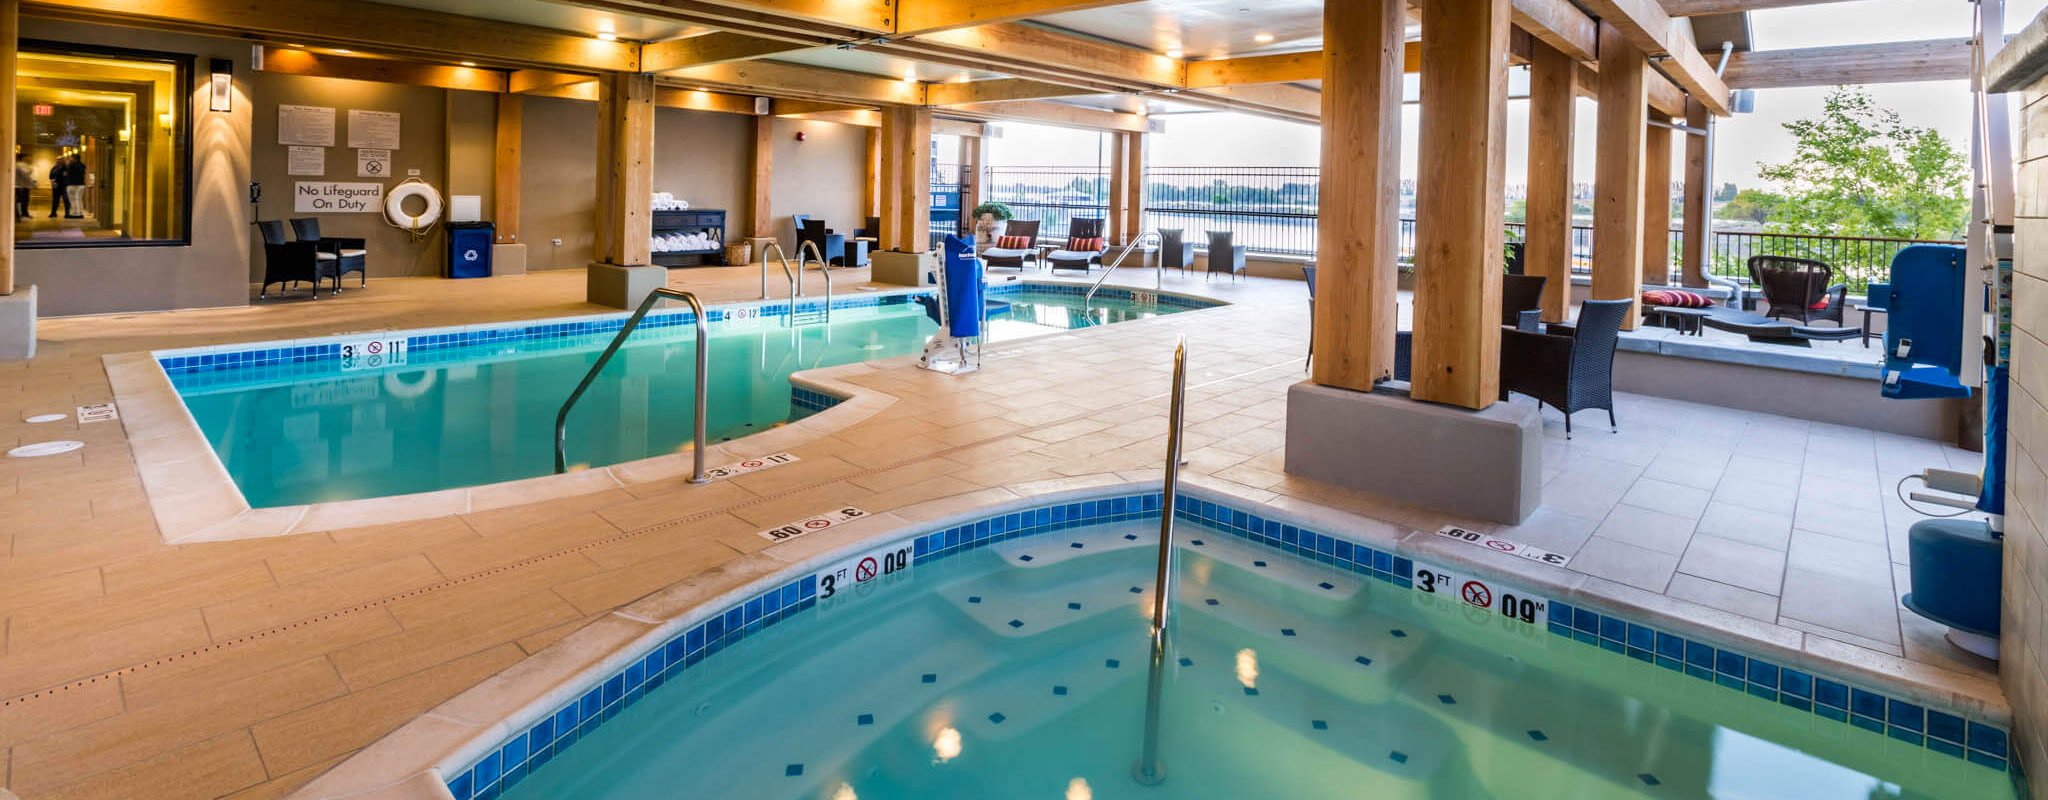 Hotel pool in the Tri-Cities